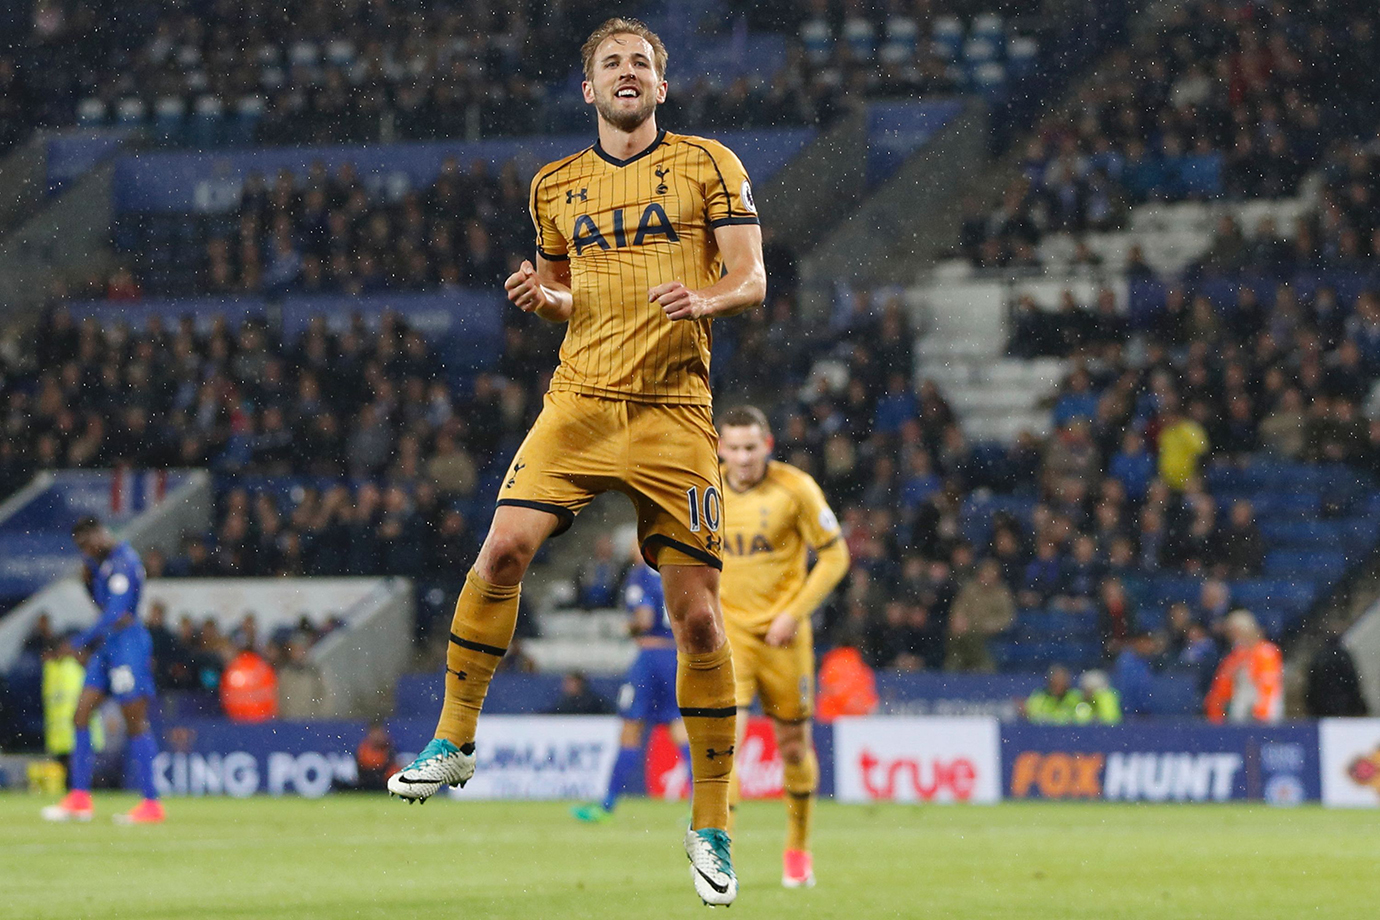 Harry Kane celebrates scoring his third goal, their fifth, against Leicester City.